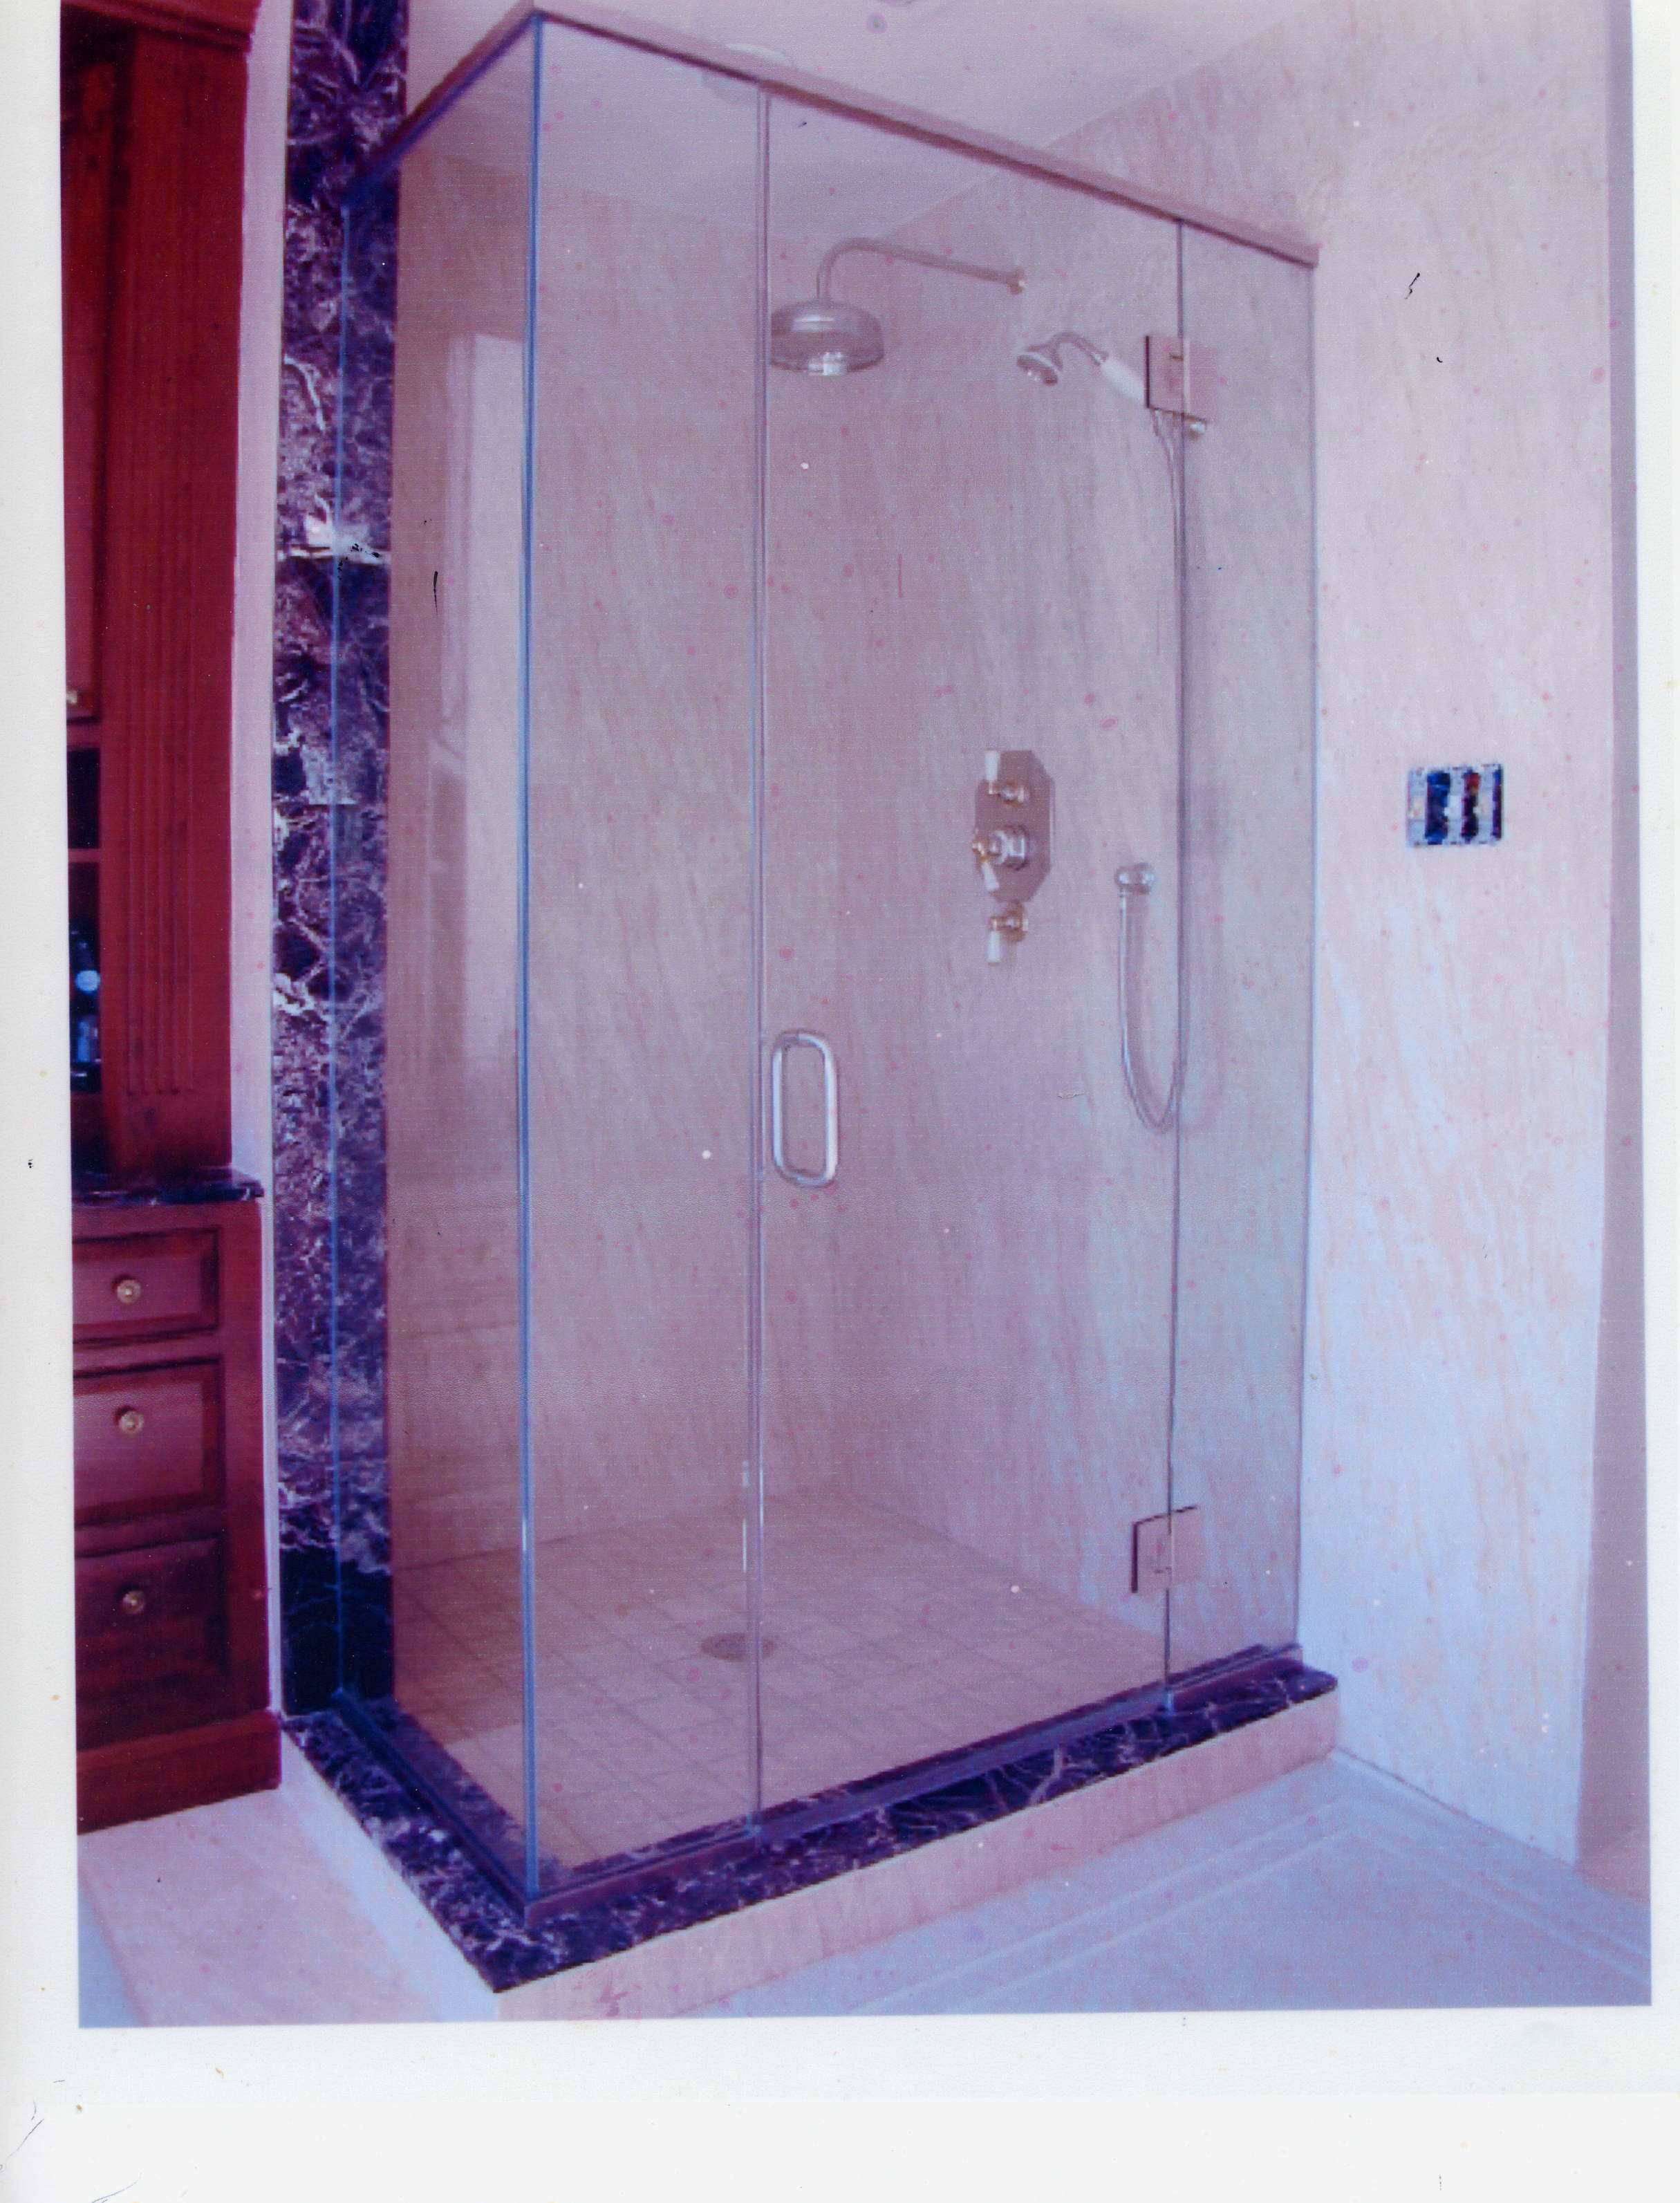 Shower Doors The Best Option For Your Rental